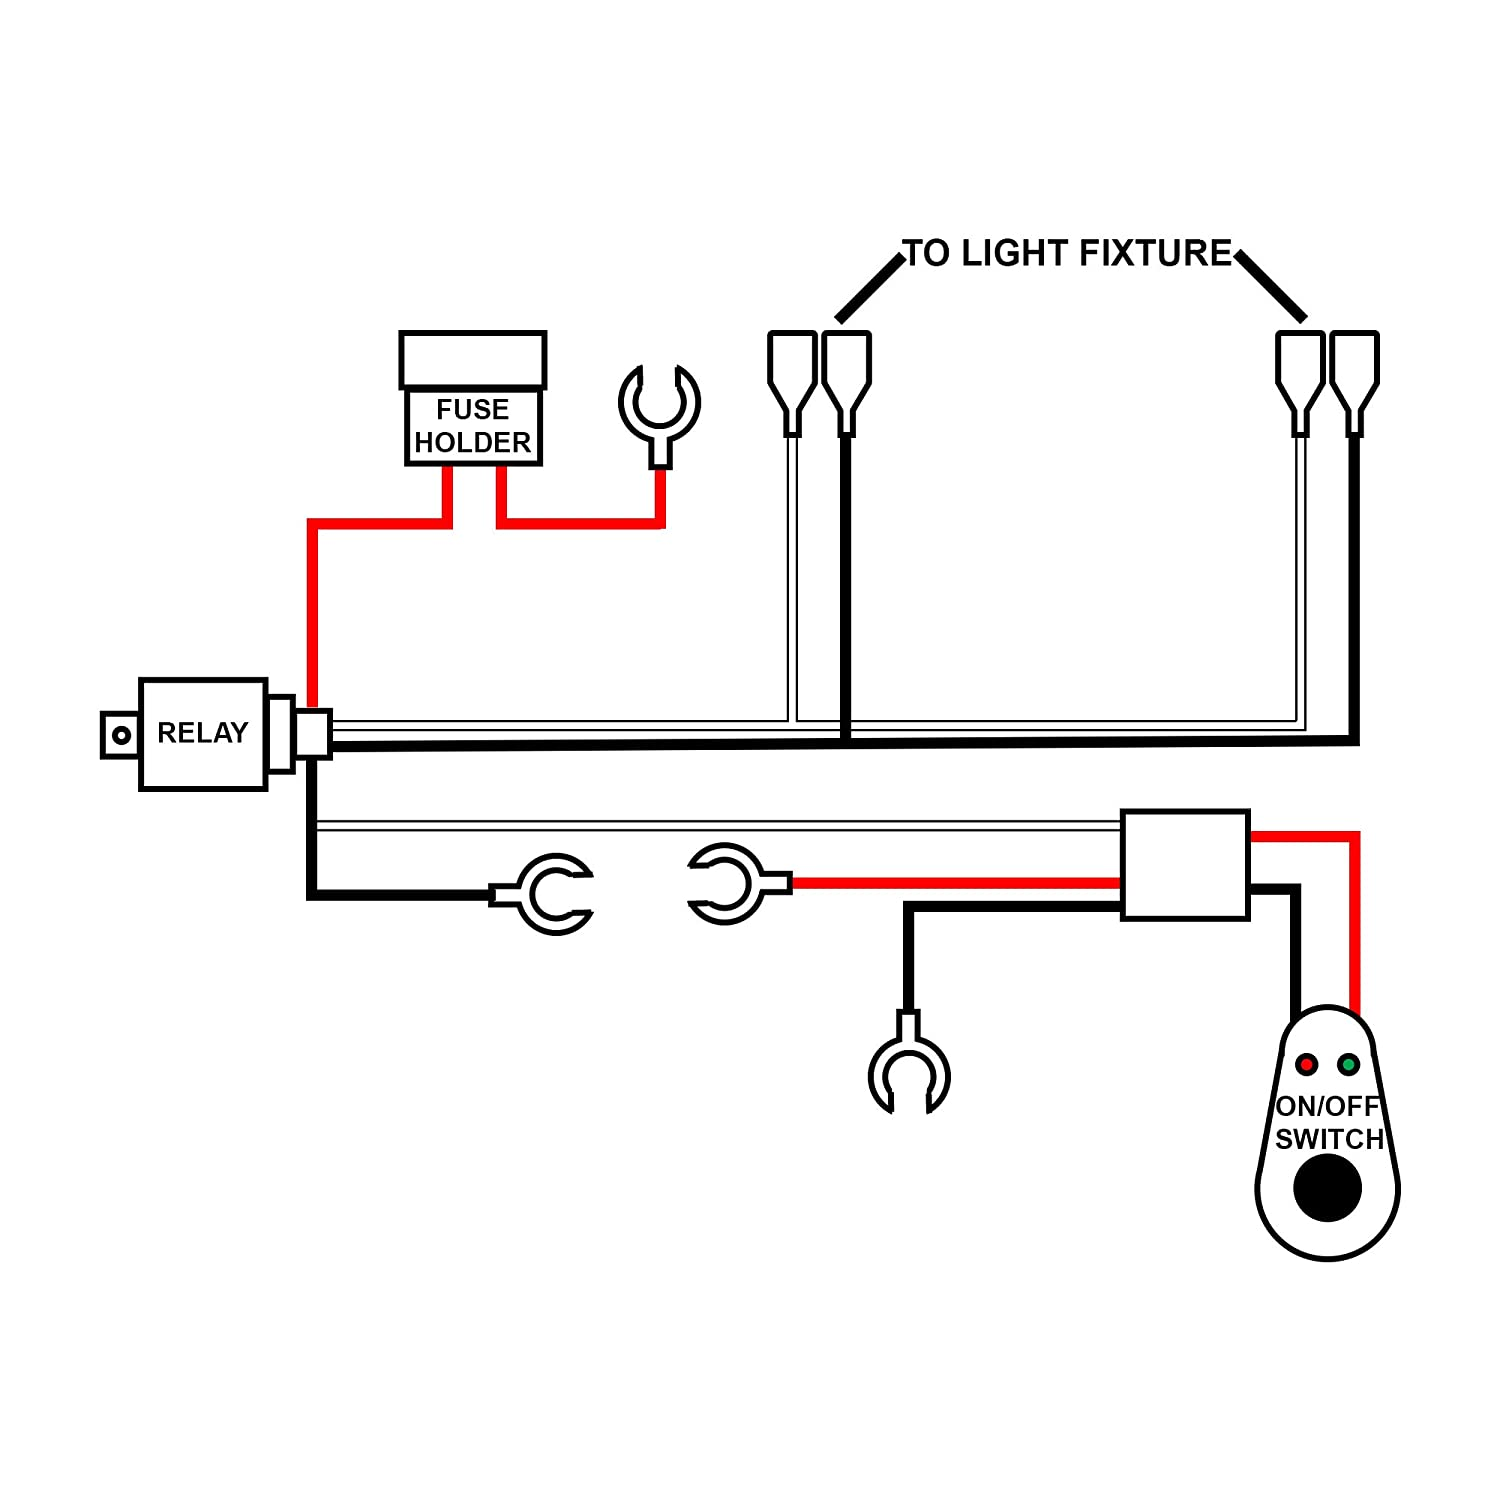 71fqGUyUJ5L._SL1500_ light bar wiring harness air compressor wiring harness \u2022 free led light wiring diagram at readyjetset.co